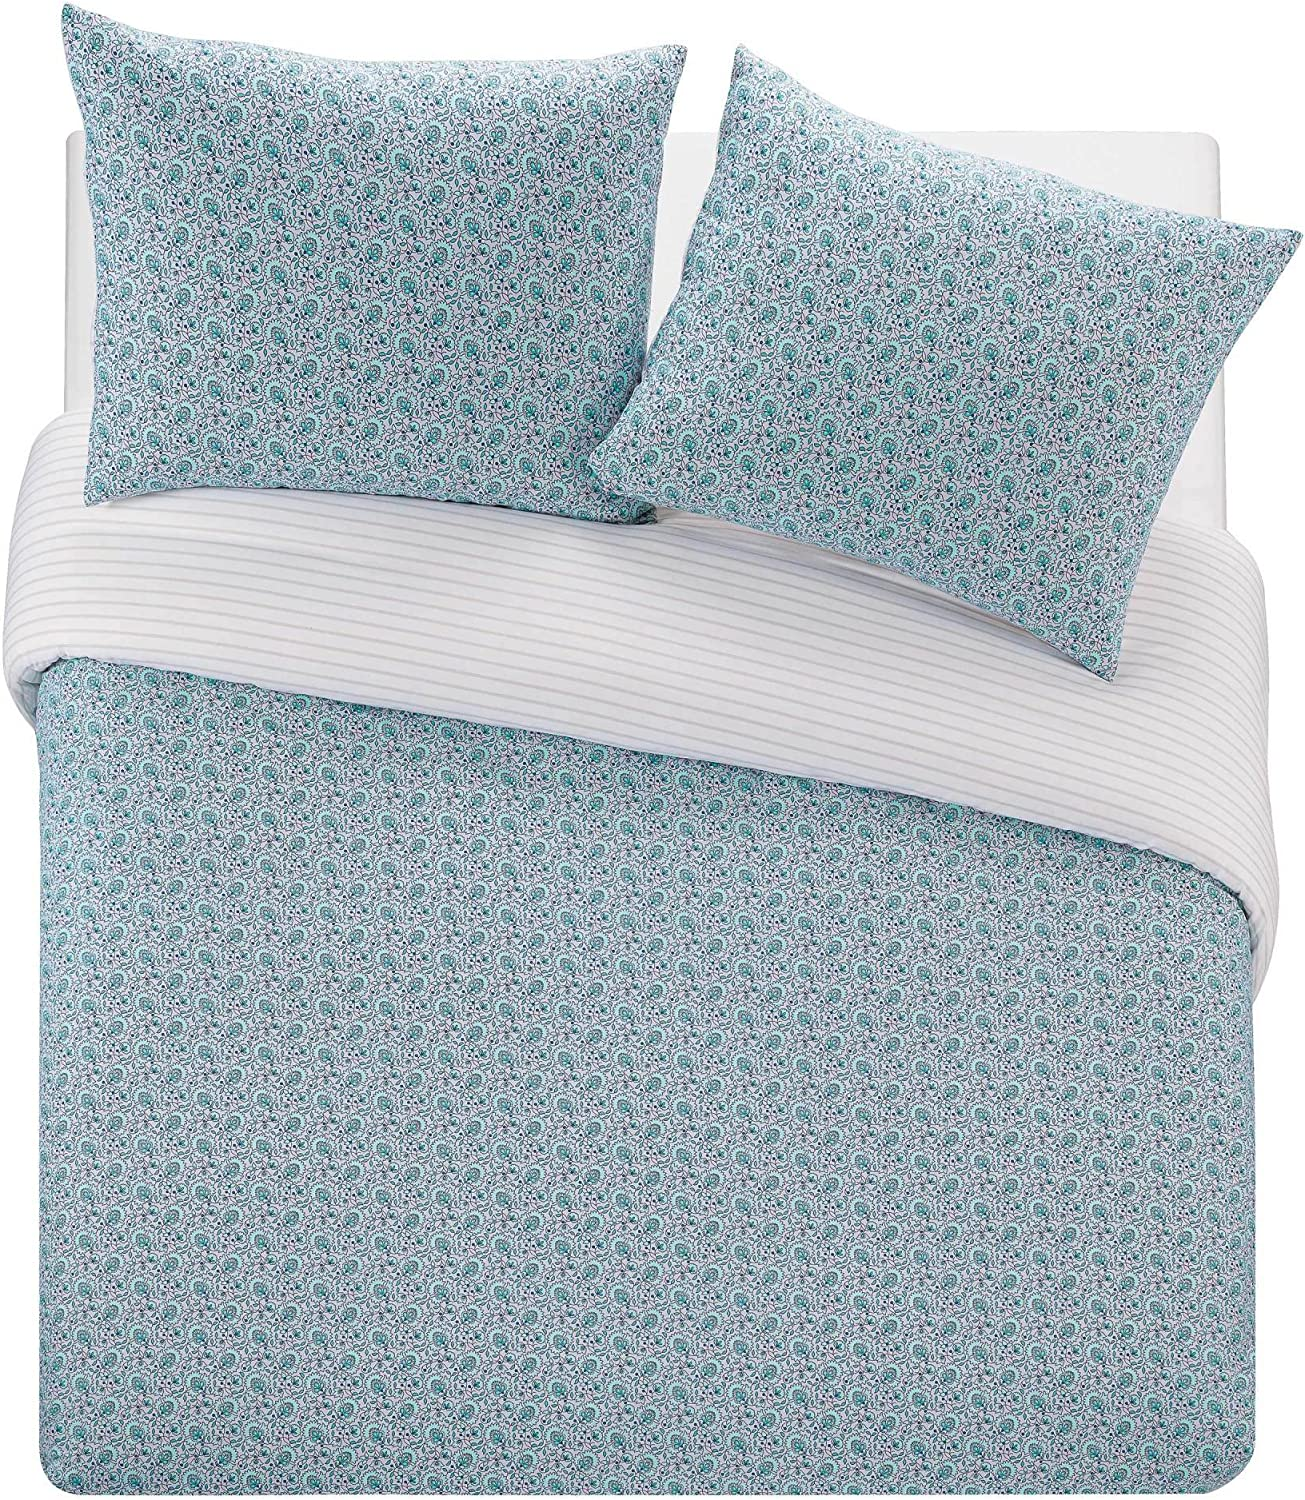 WestPoint Home Tansley Duvet Cover Set, Full/Queen, Blue 3 Piece